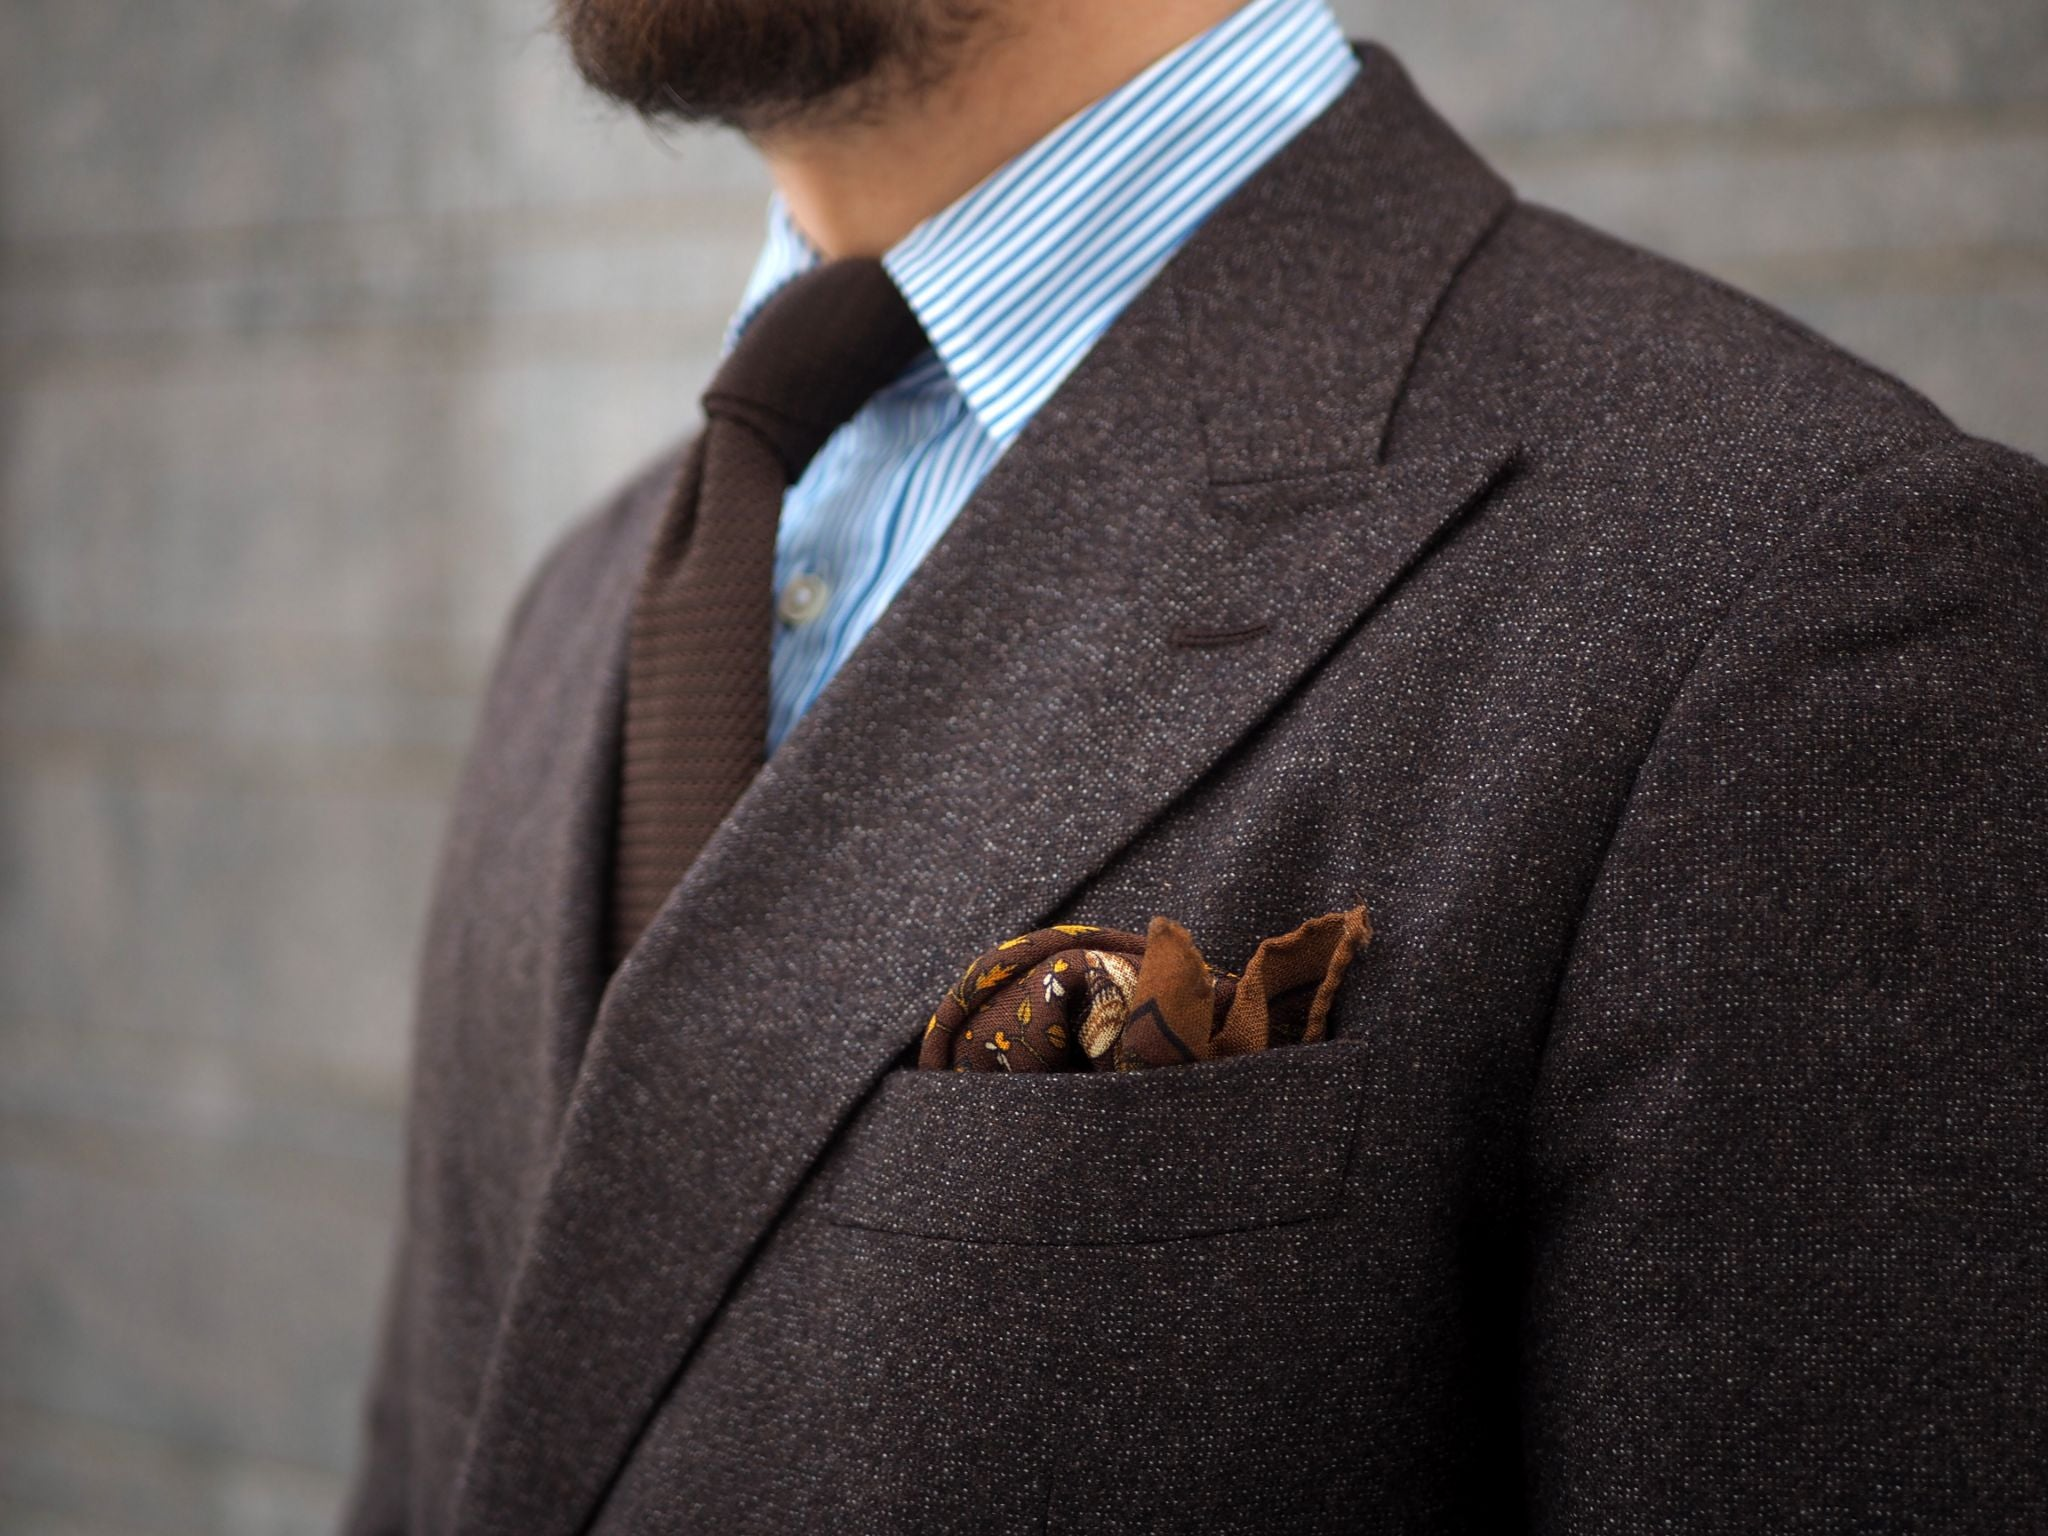 Details - Brown accessories with the brown suit.